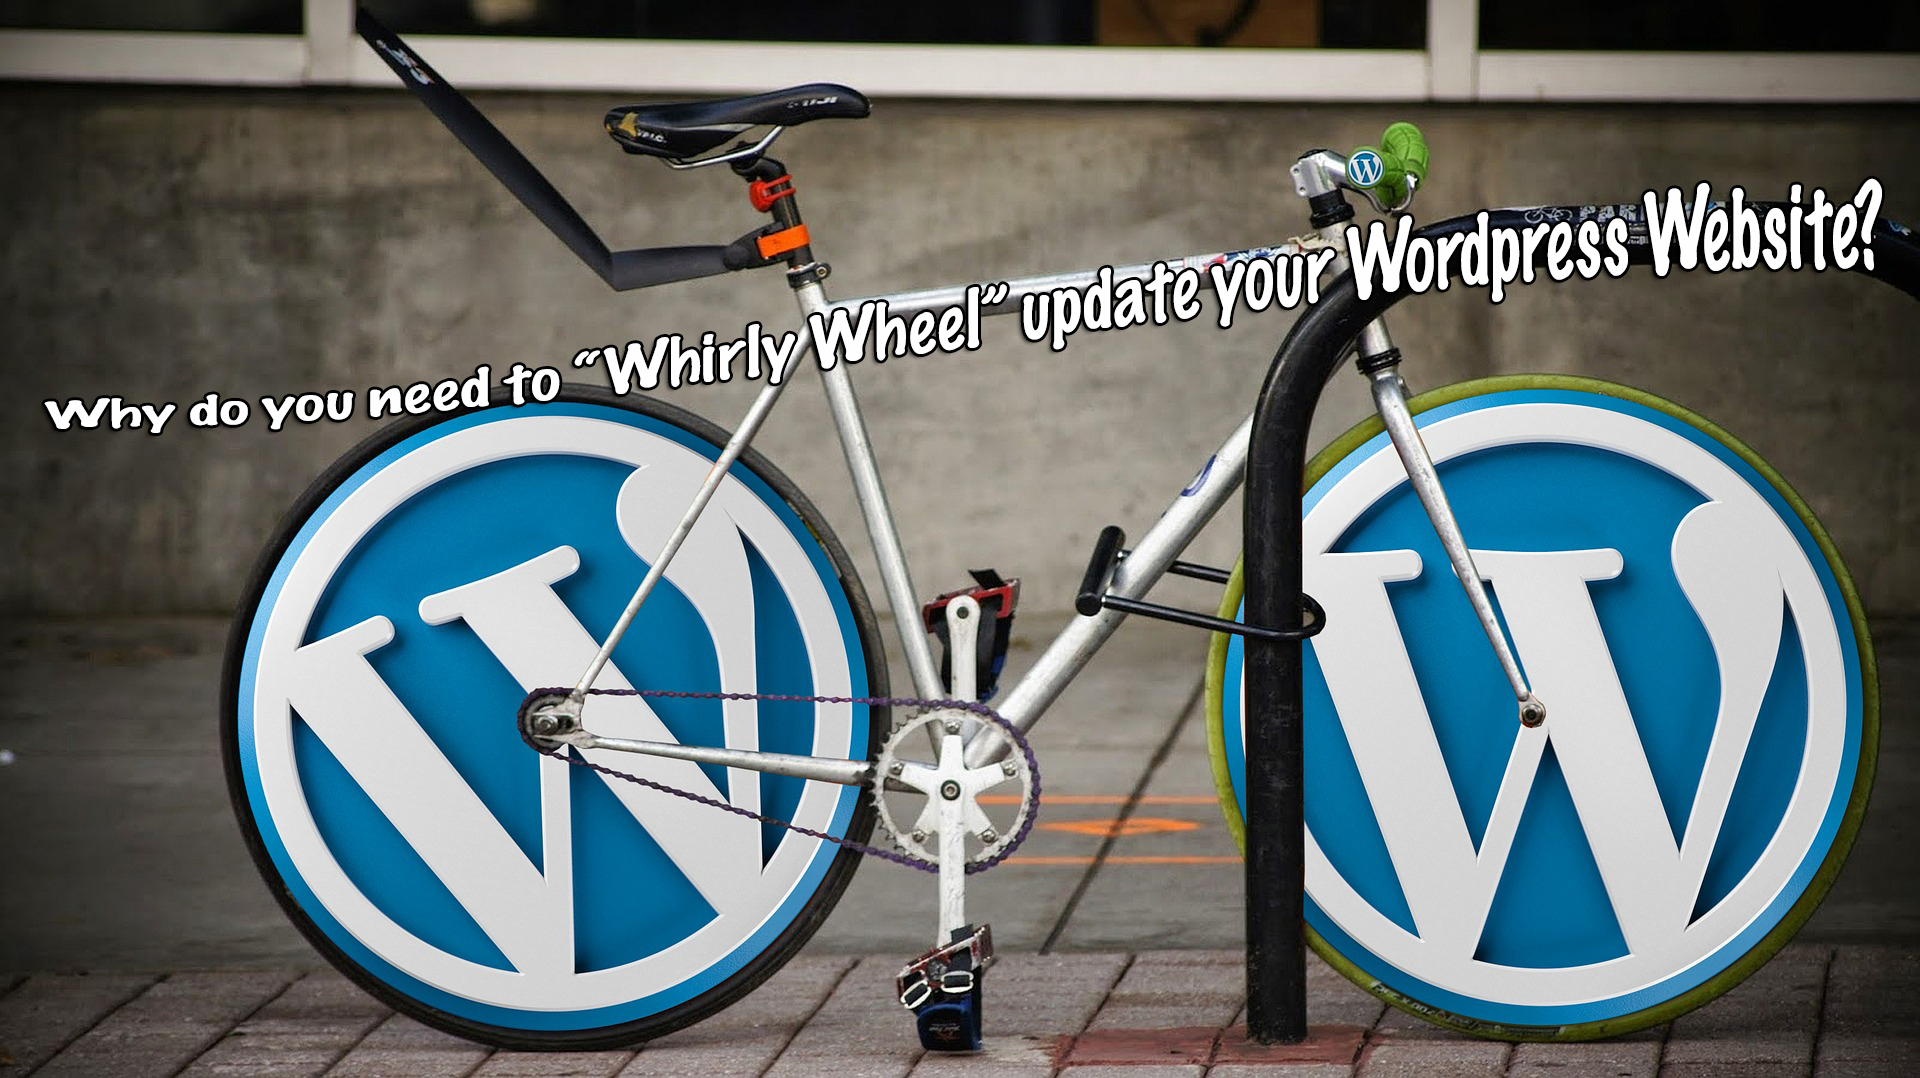 Why do you need to Whirly Wheel update your WordPress Website?